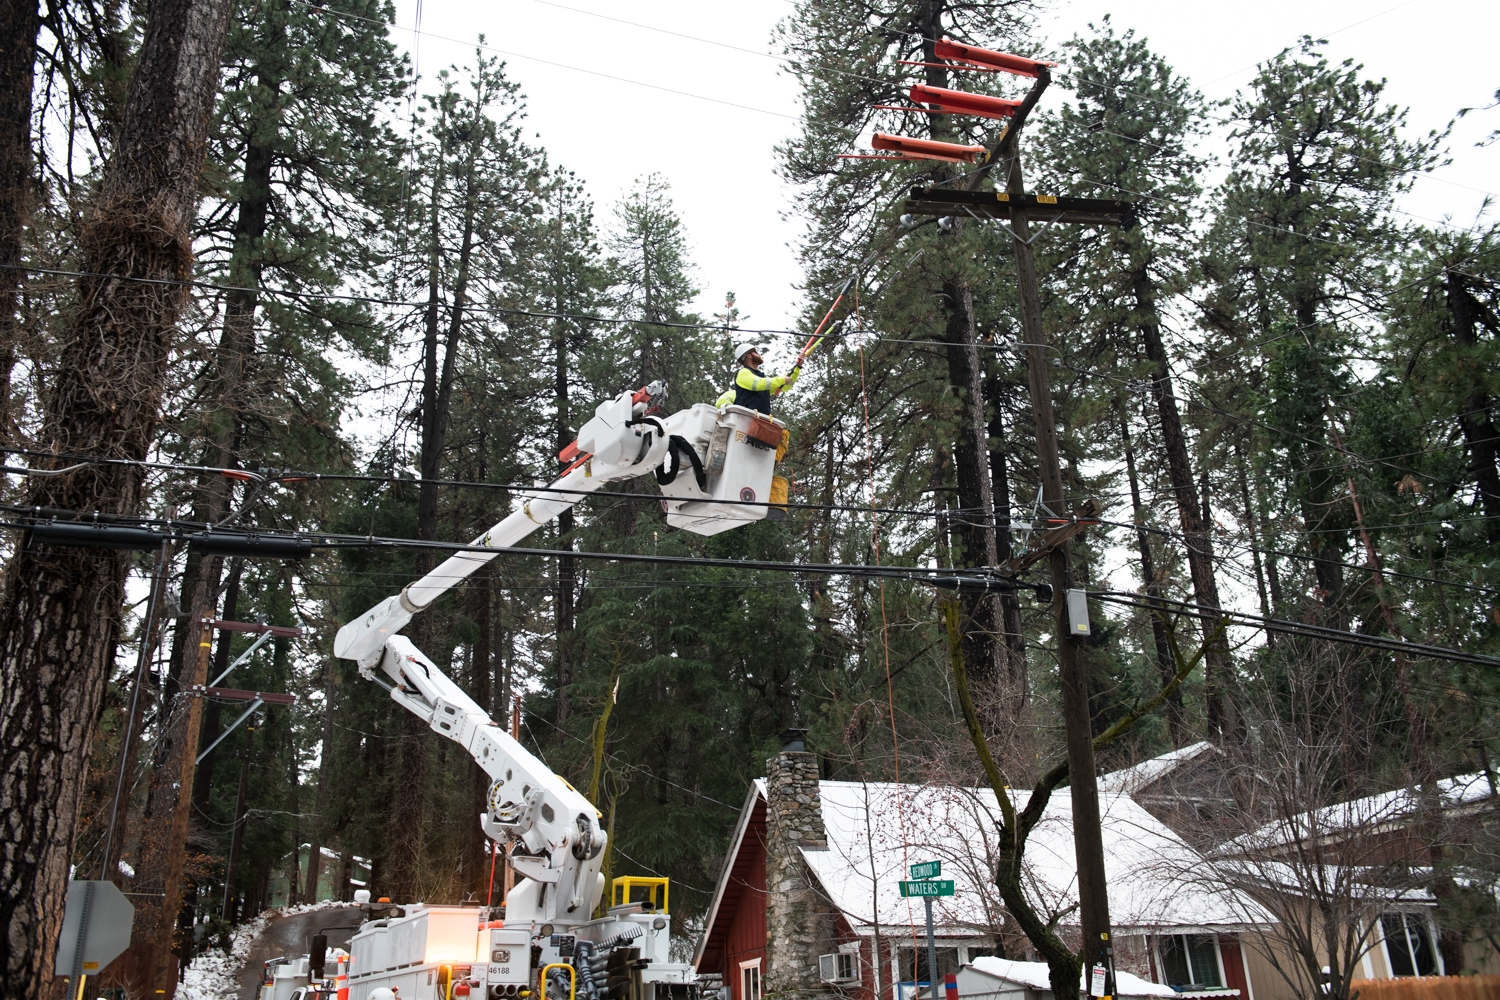 SCE crews worked throughout the mountain communities around Lake Arrowhead to restore power after the Thanksgiving snowstorm.